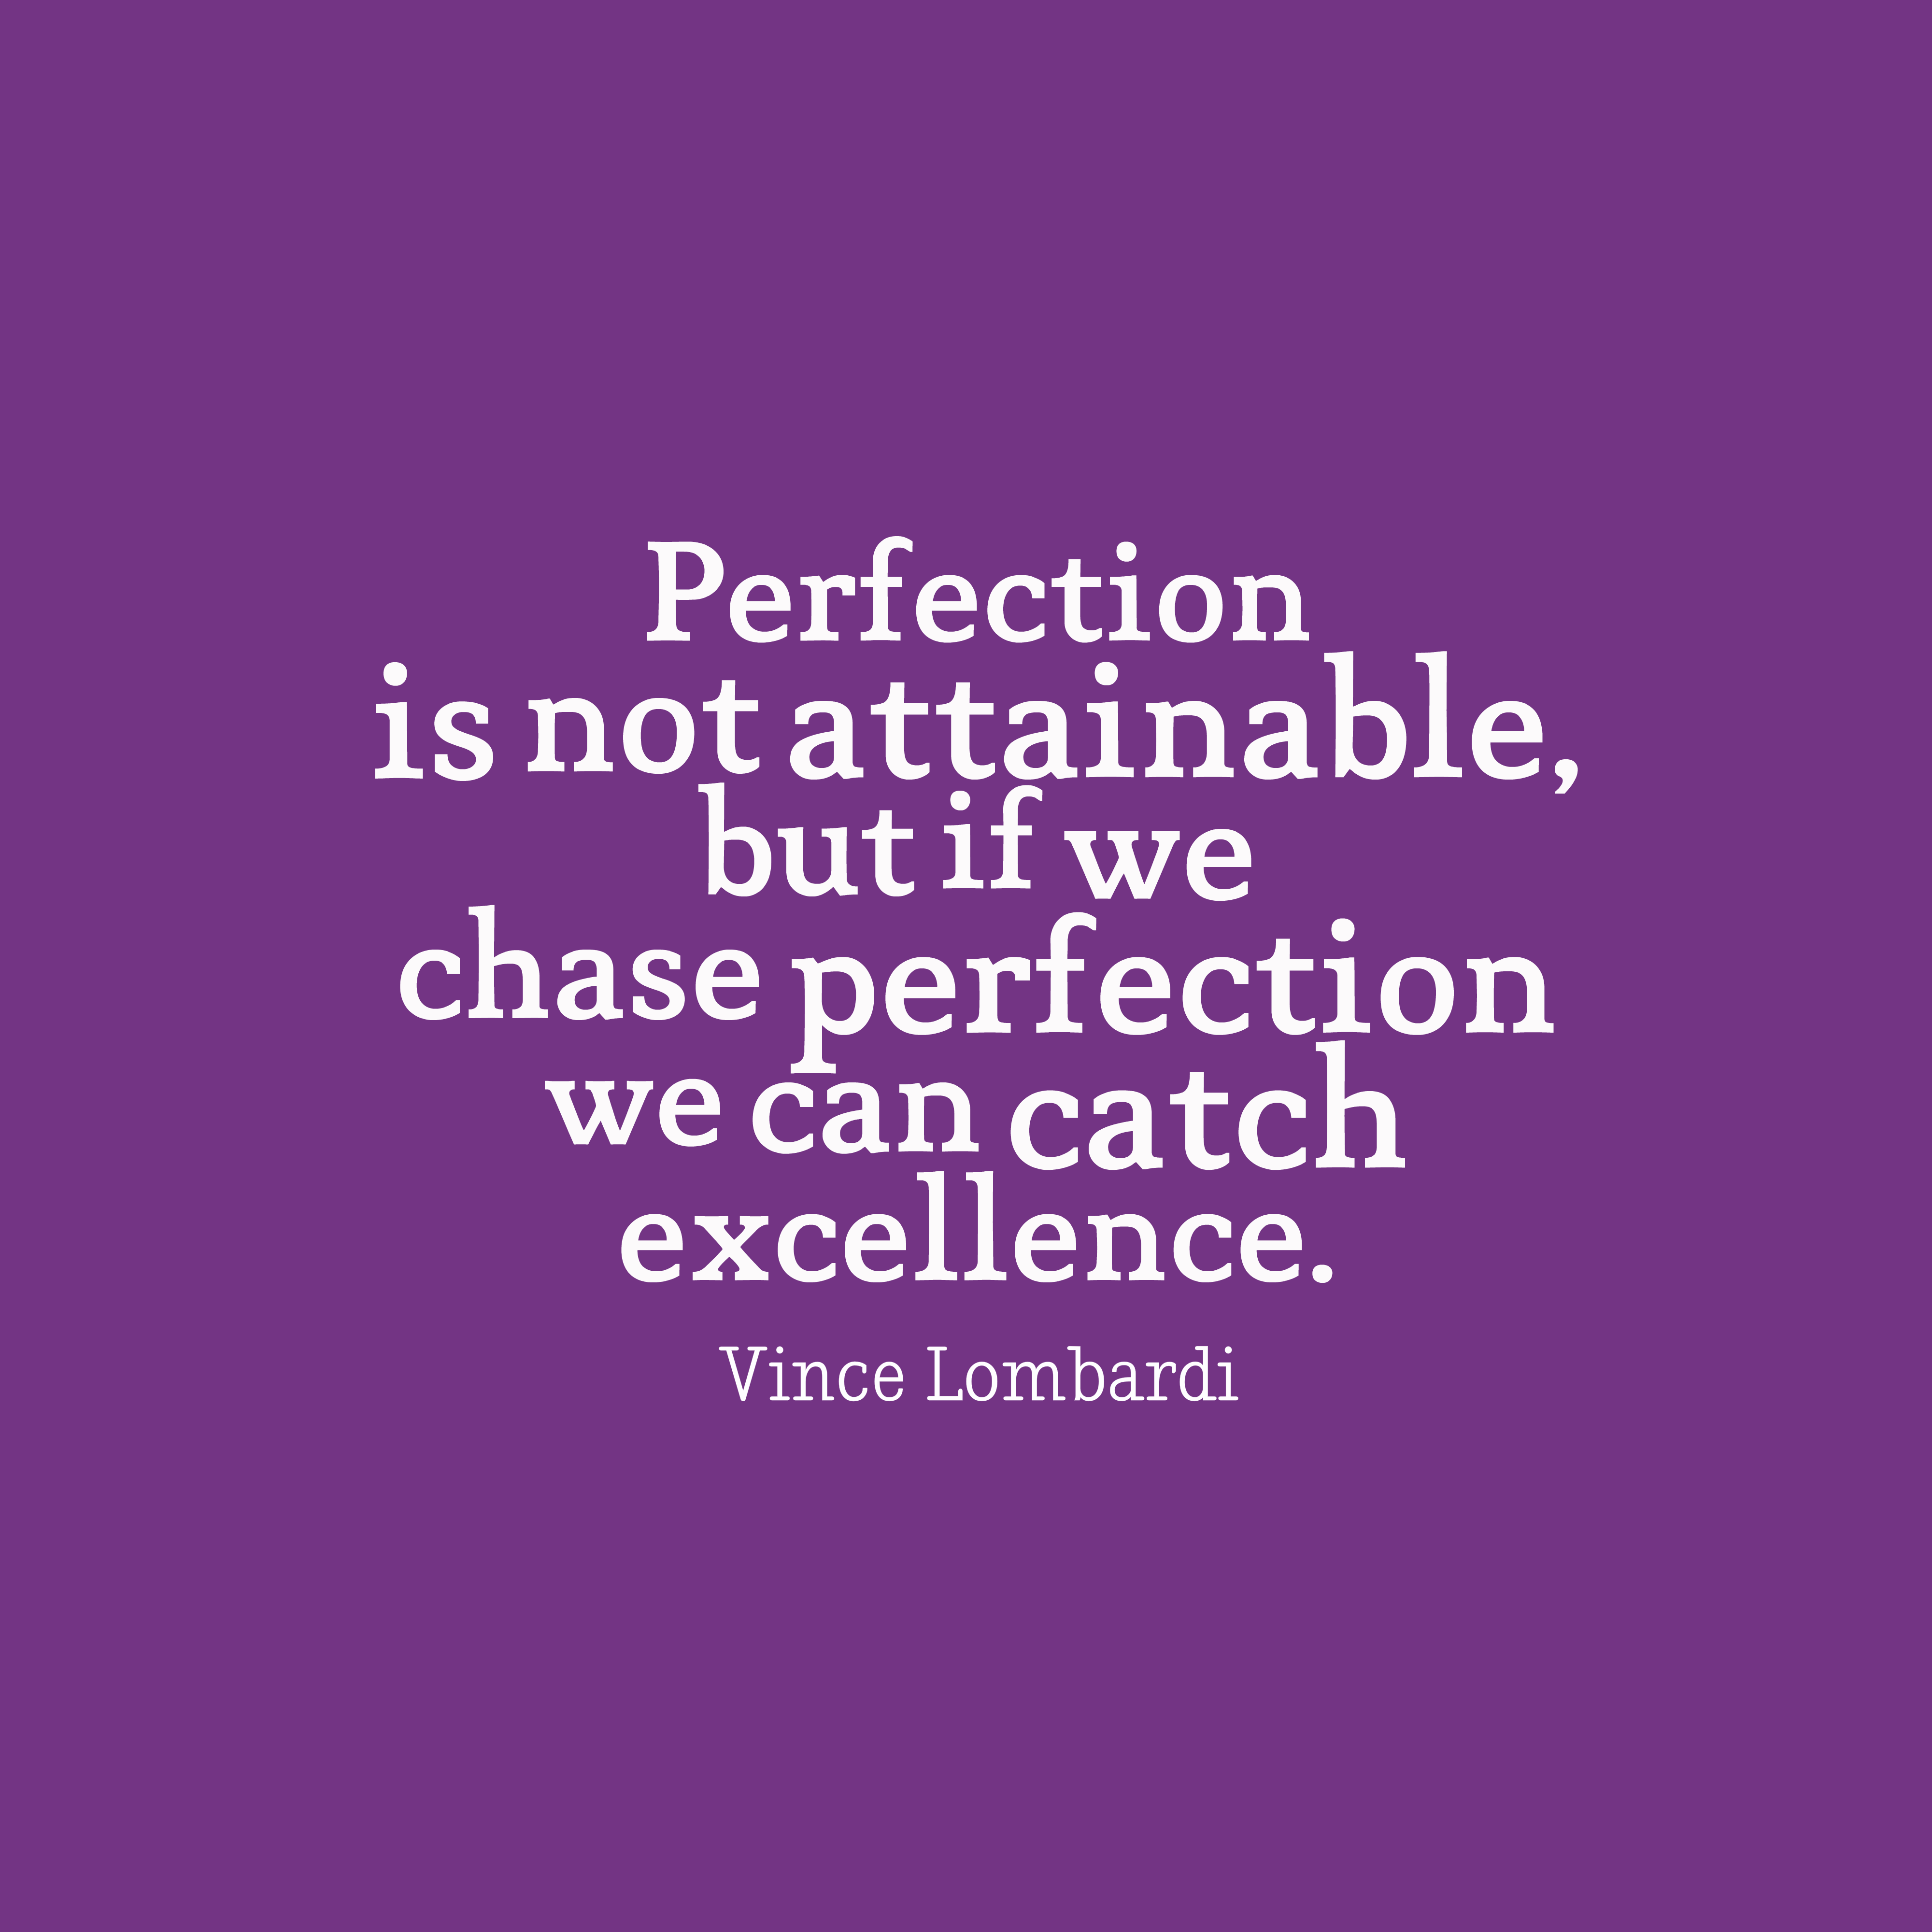 Quotes image of Perfection is not attainable, but if we chase perfection we can catch excellence.